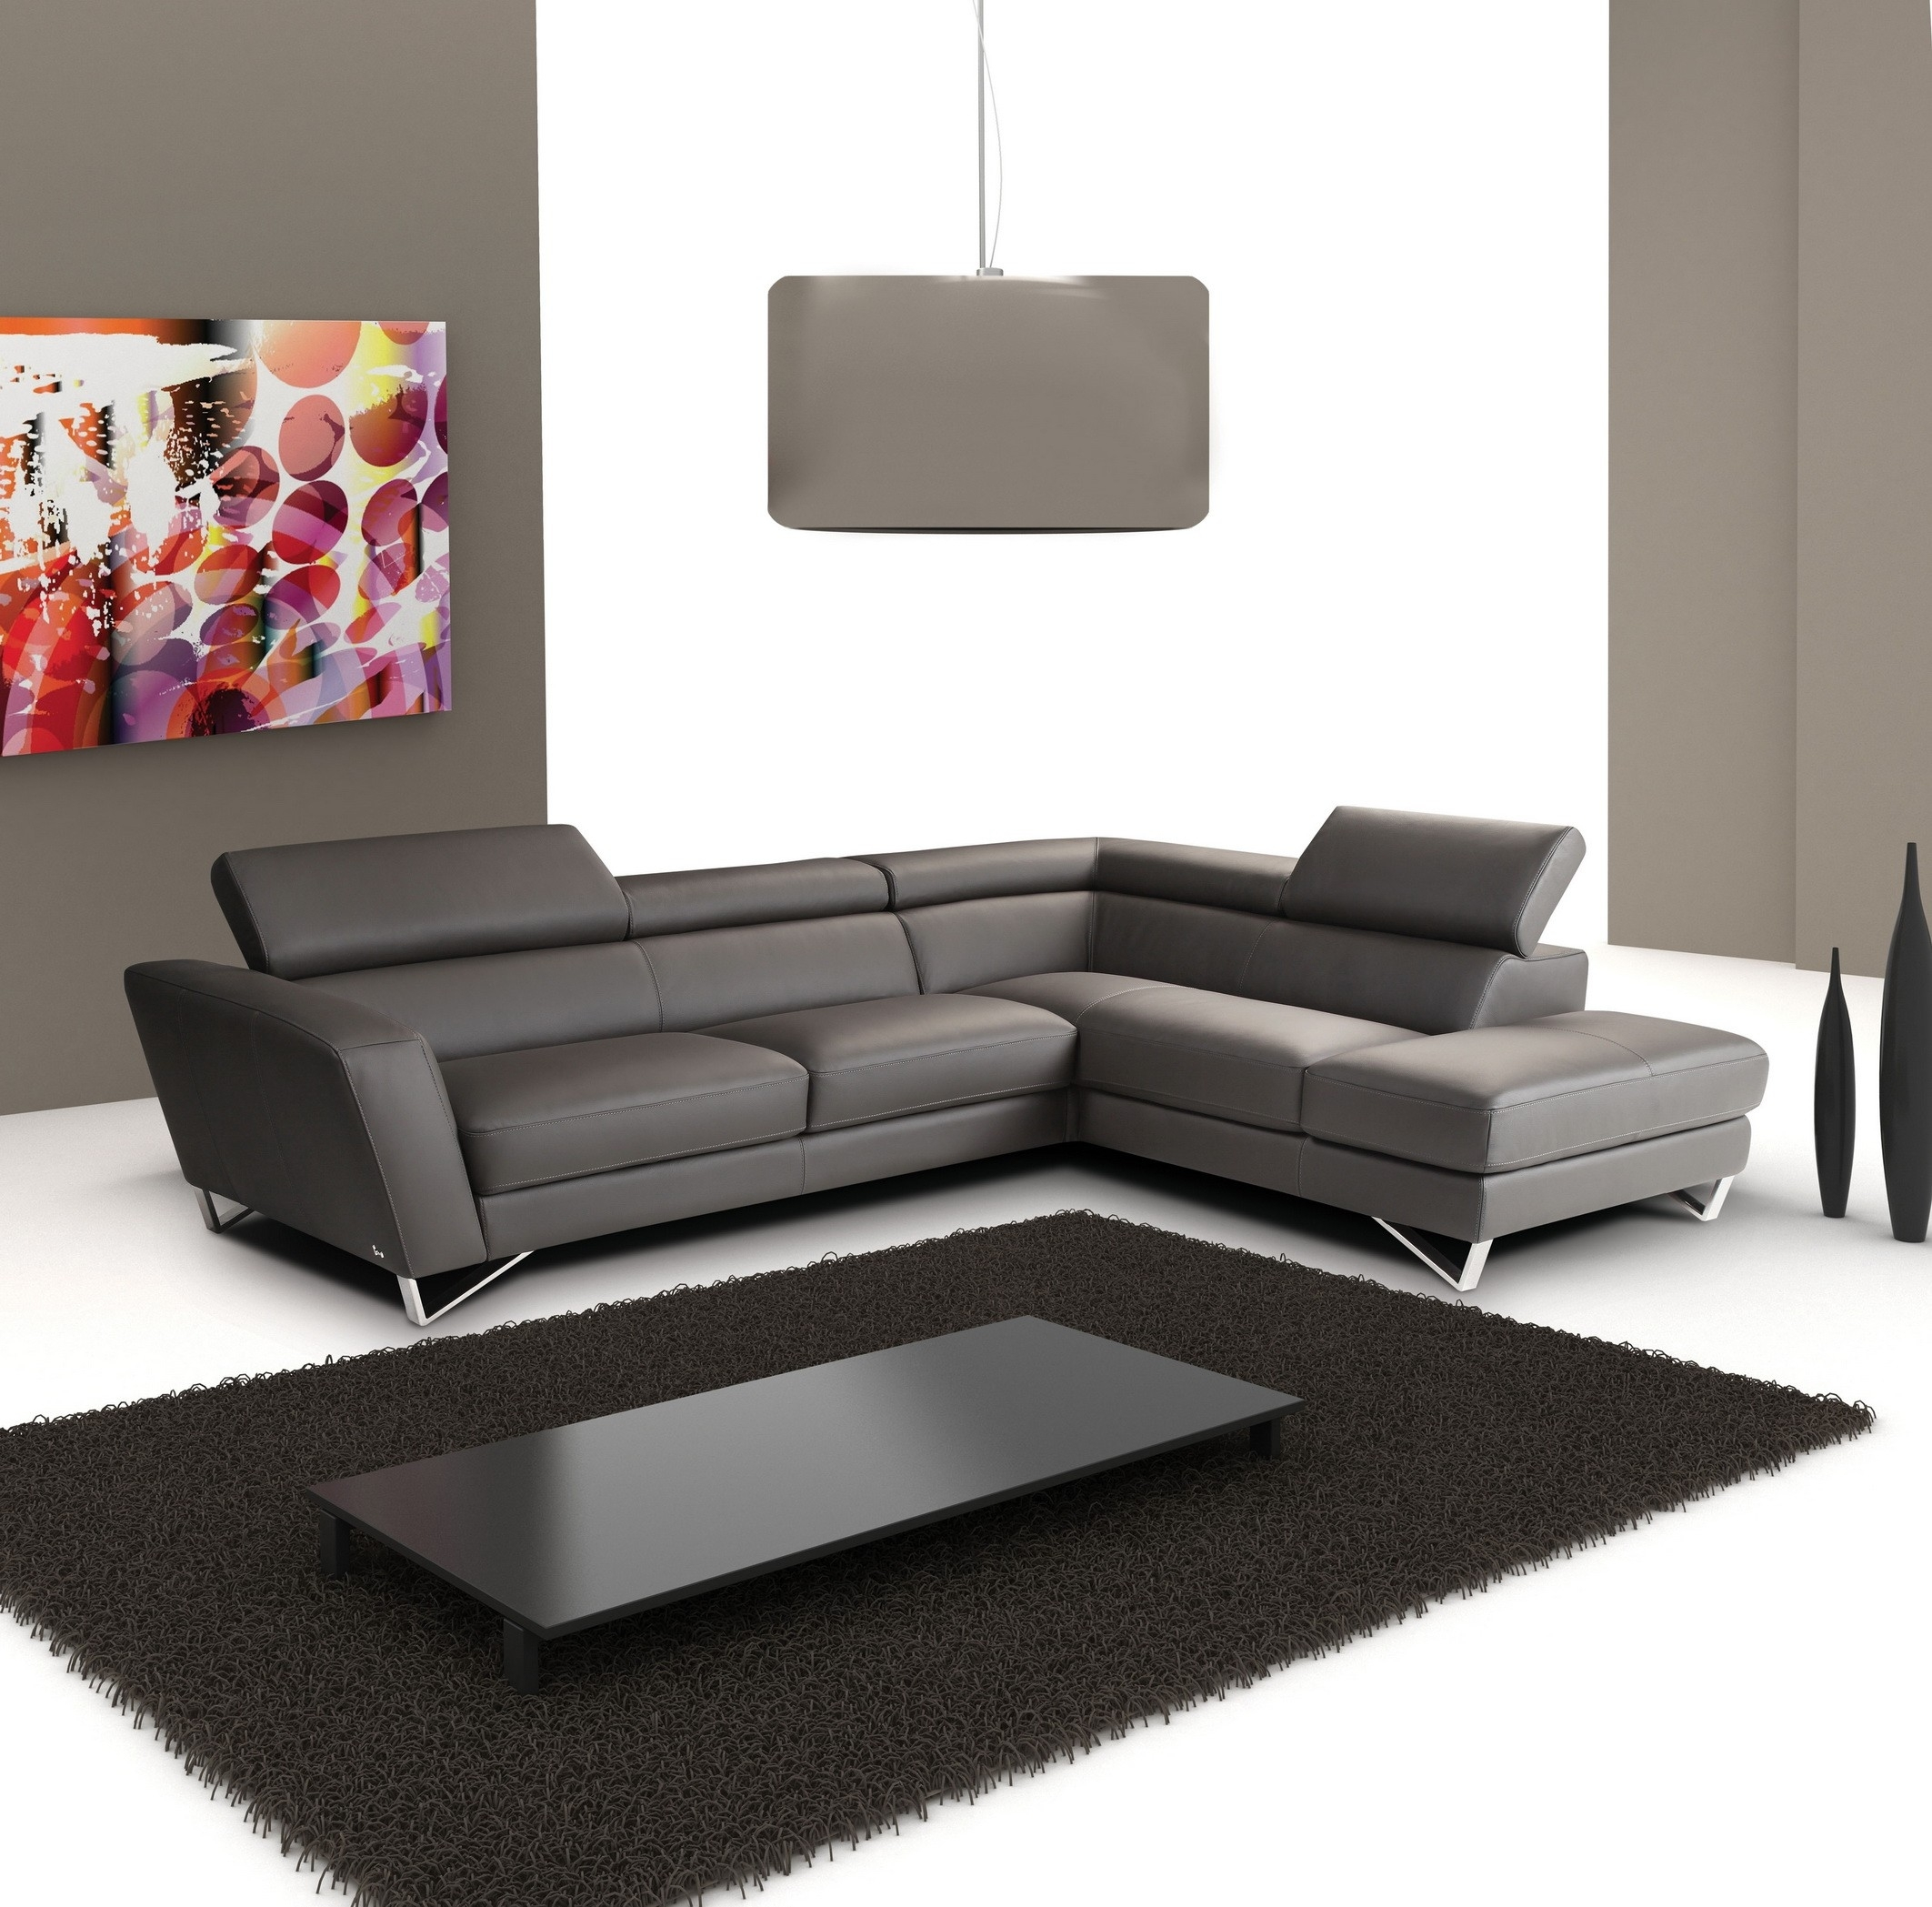 Modern Sectional Sofas For Small Spaces - Free Reference For Home with regard to Sectional Sofas at Bangalore (Image 7 of 15)